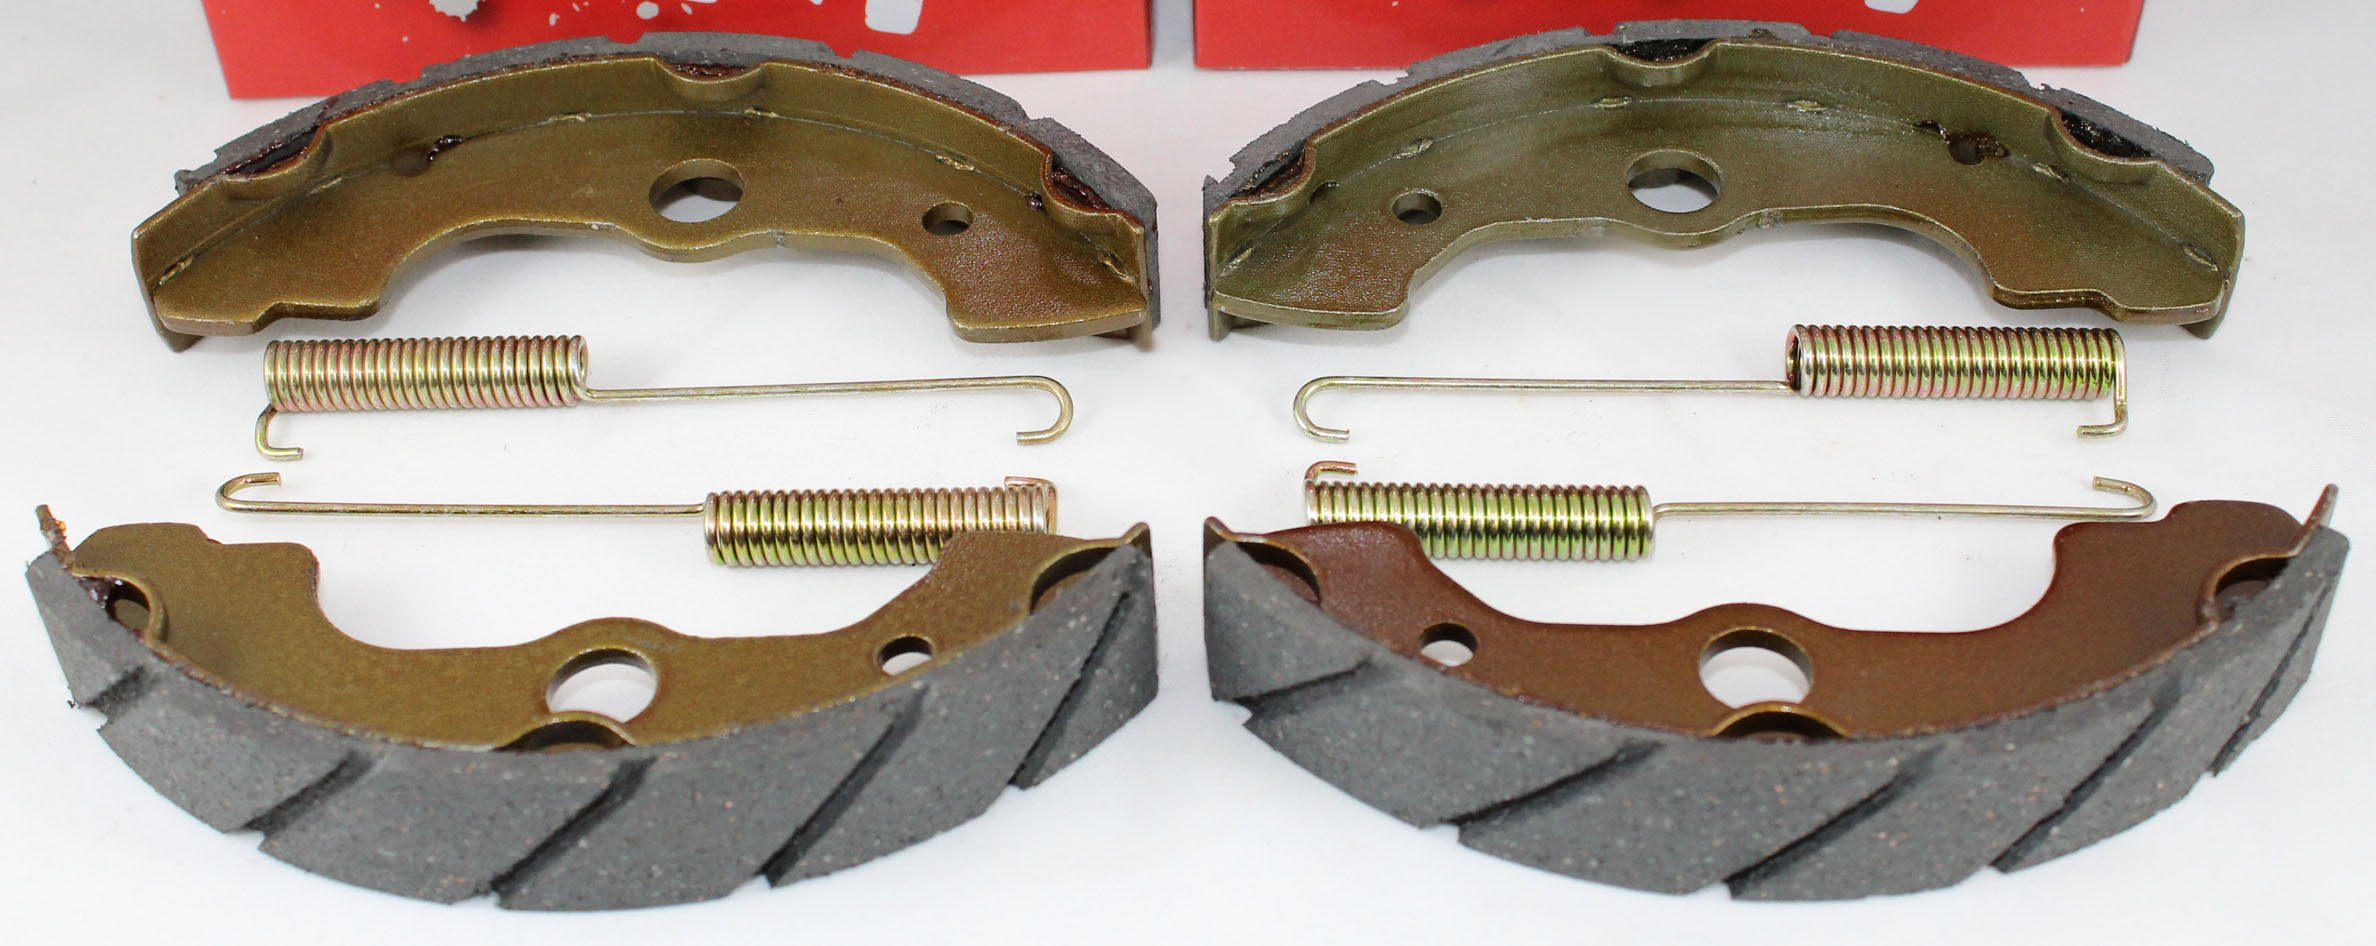 WATER GROOVED Front & Rear Brake Shoes & Springs SET for the Honda 2000-2006 TRX 350 Rancher ATV by Hi-Caliber Powersports Parts (Image #2)